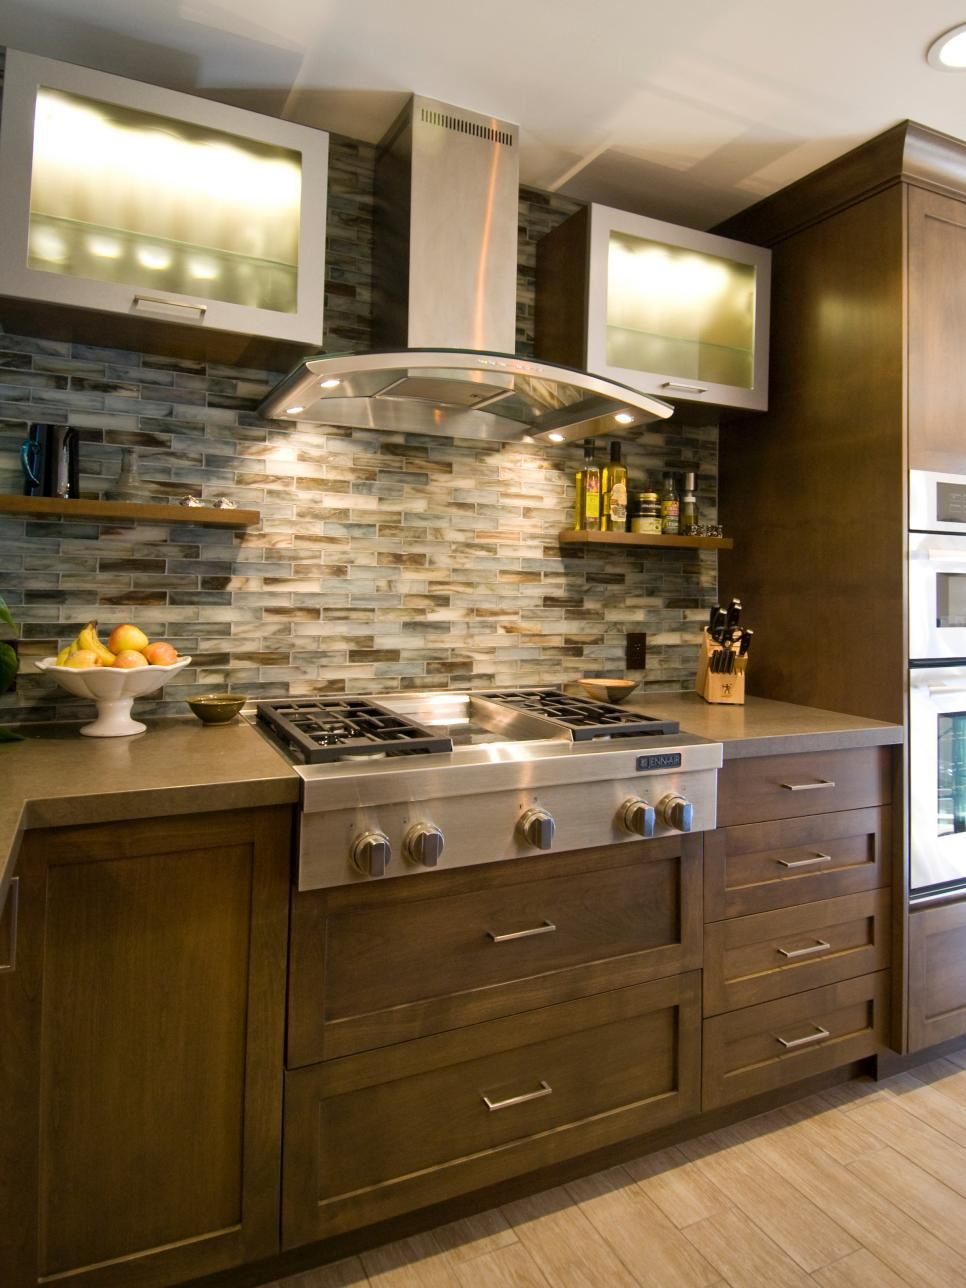 Kitchen Palette This Bold Mosaic Tile Backsplash Open Shelving And New Appliances